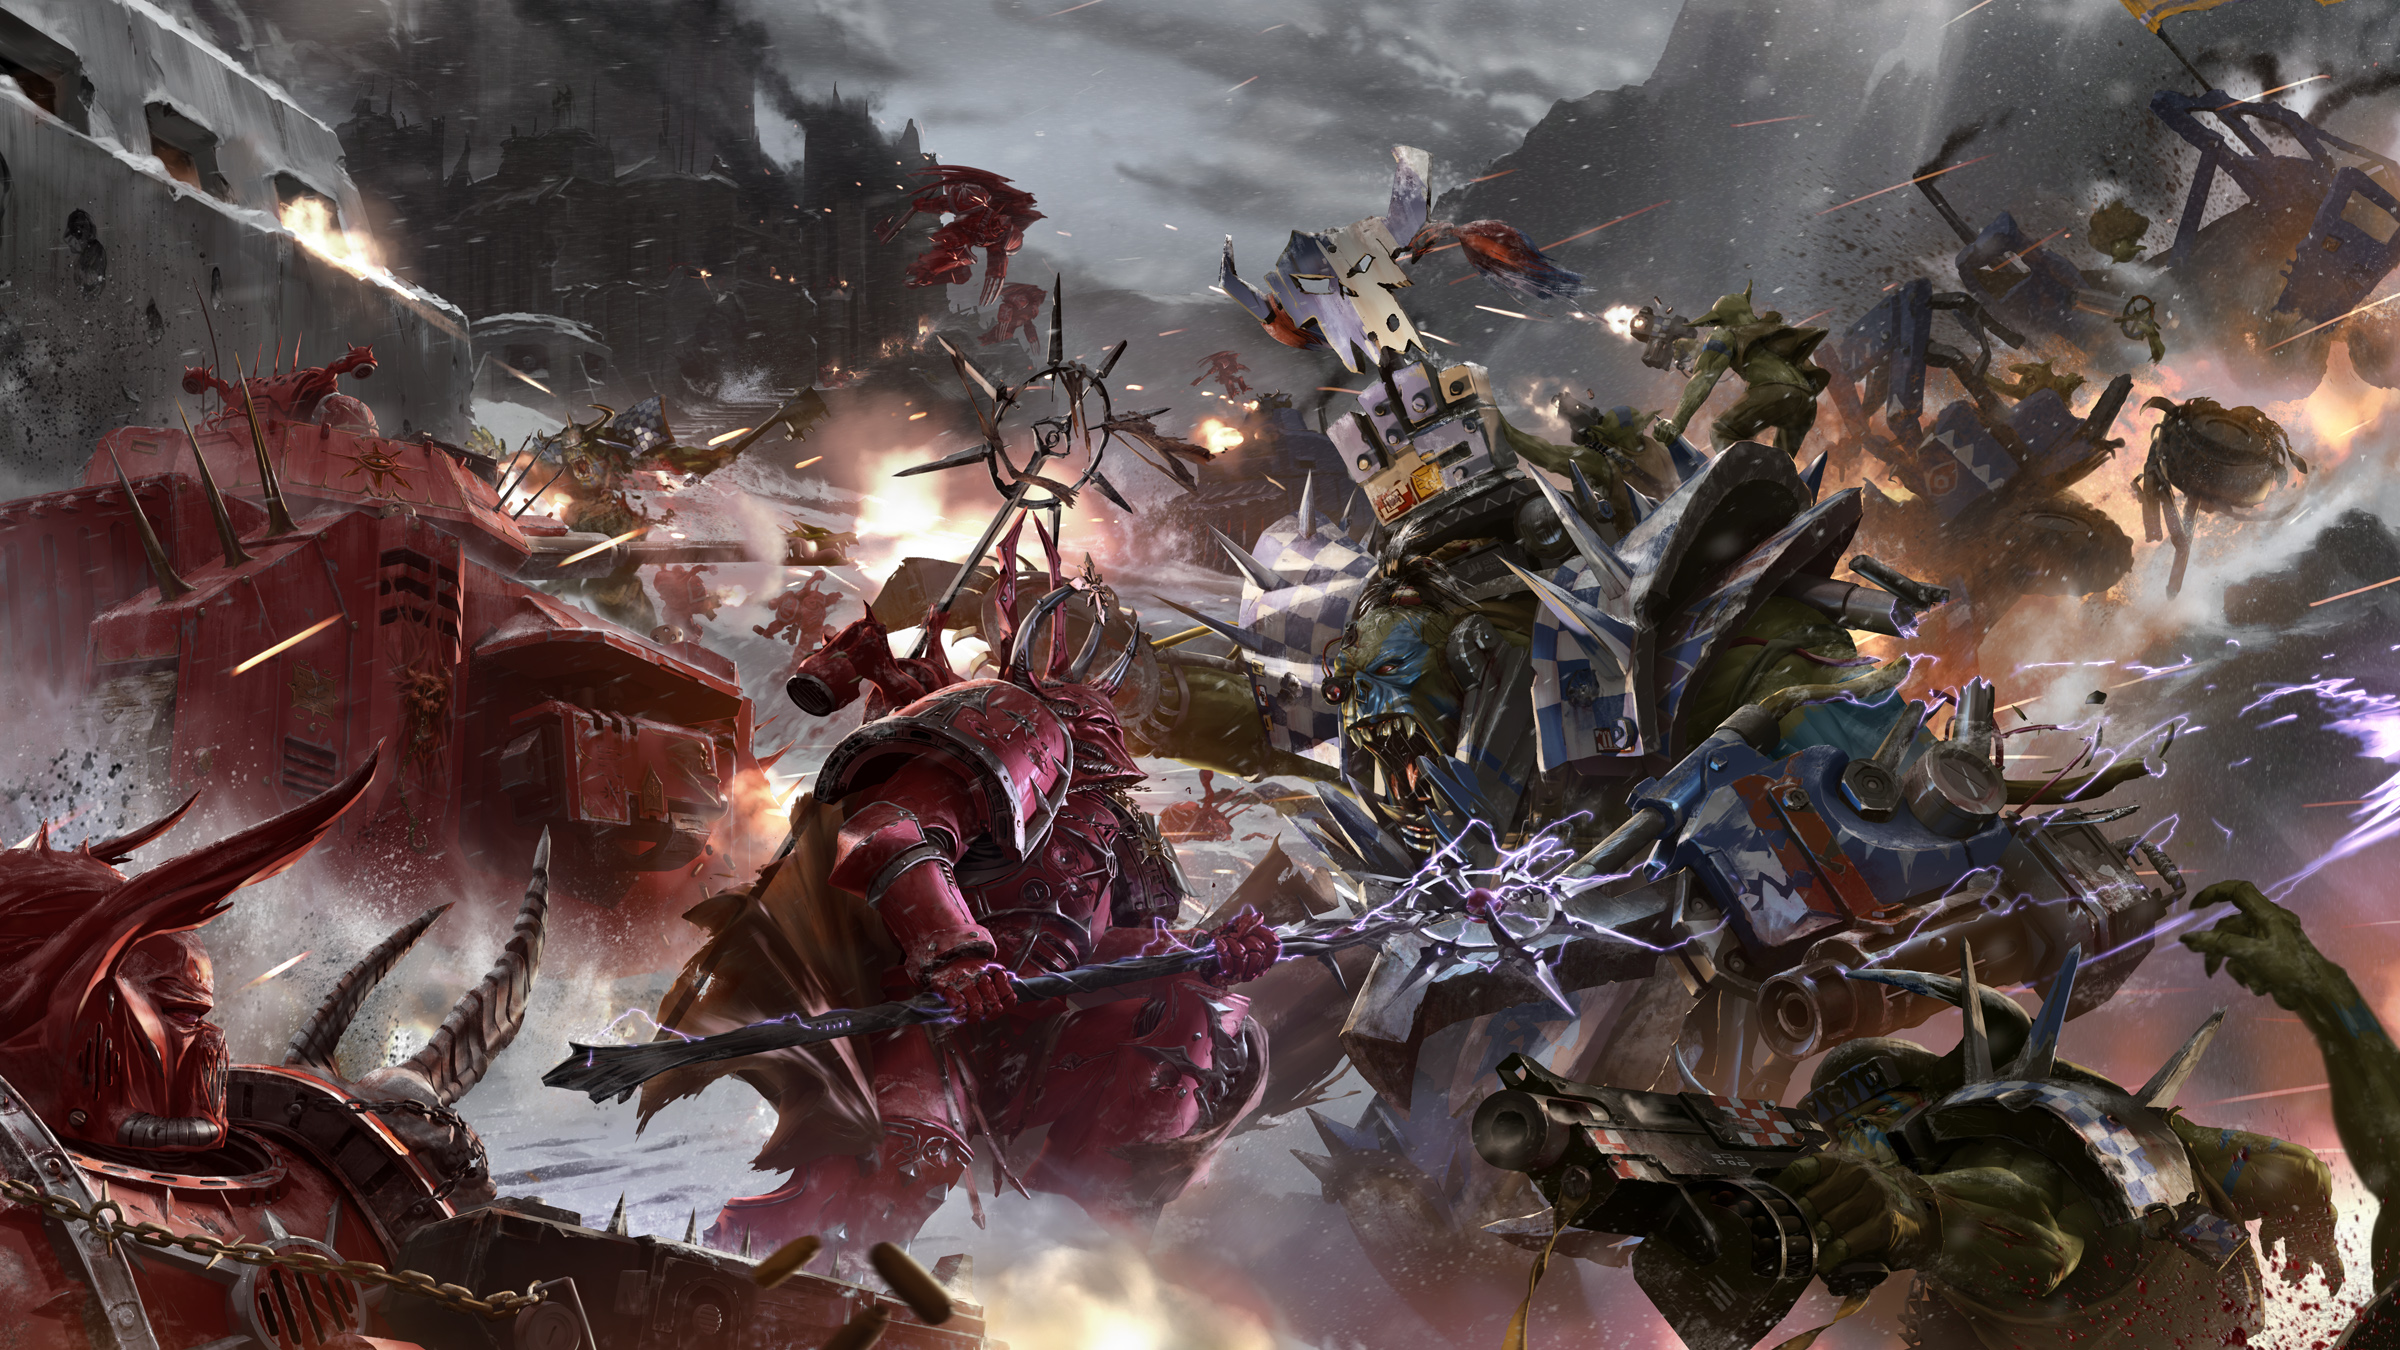 Eternal Crusade Concept Art: Massive Battle by ukitakumuki